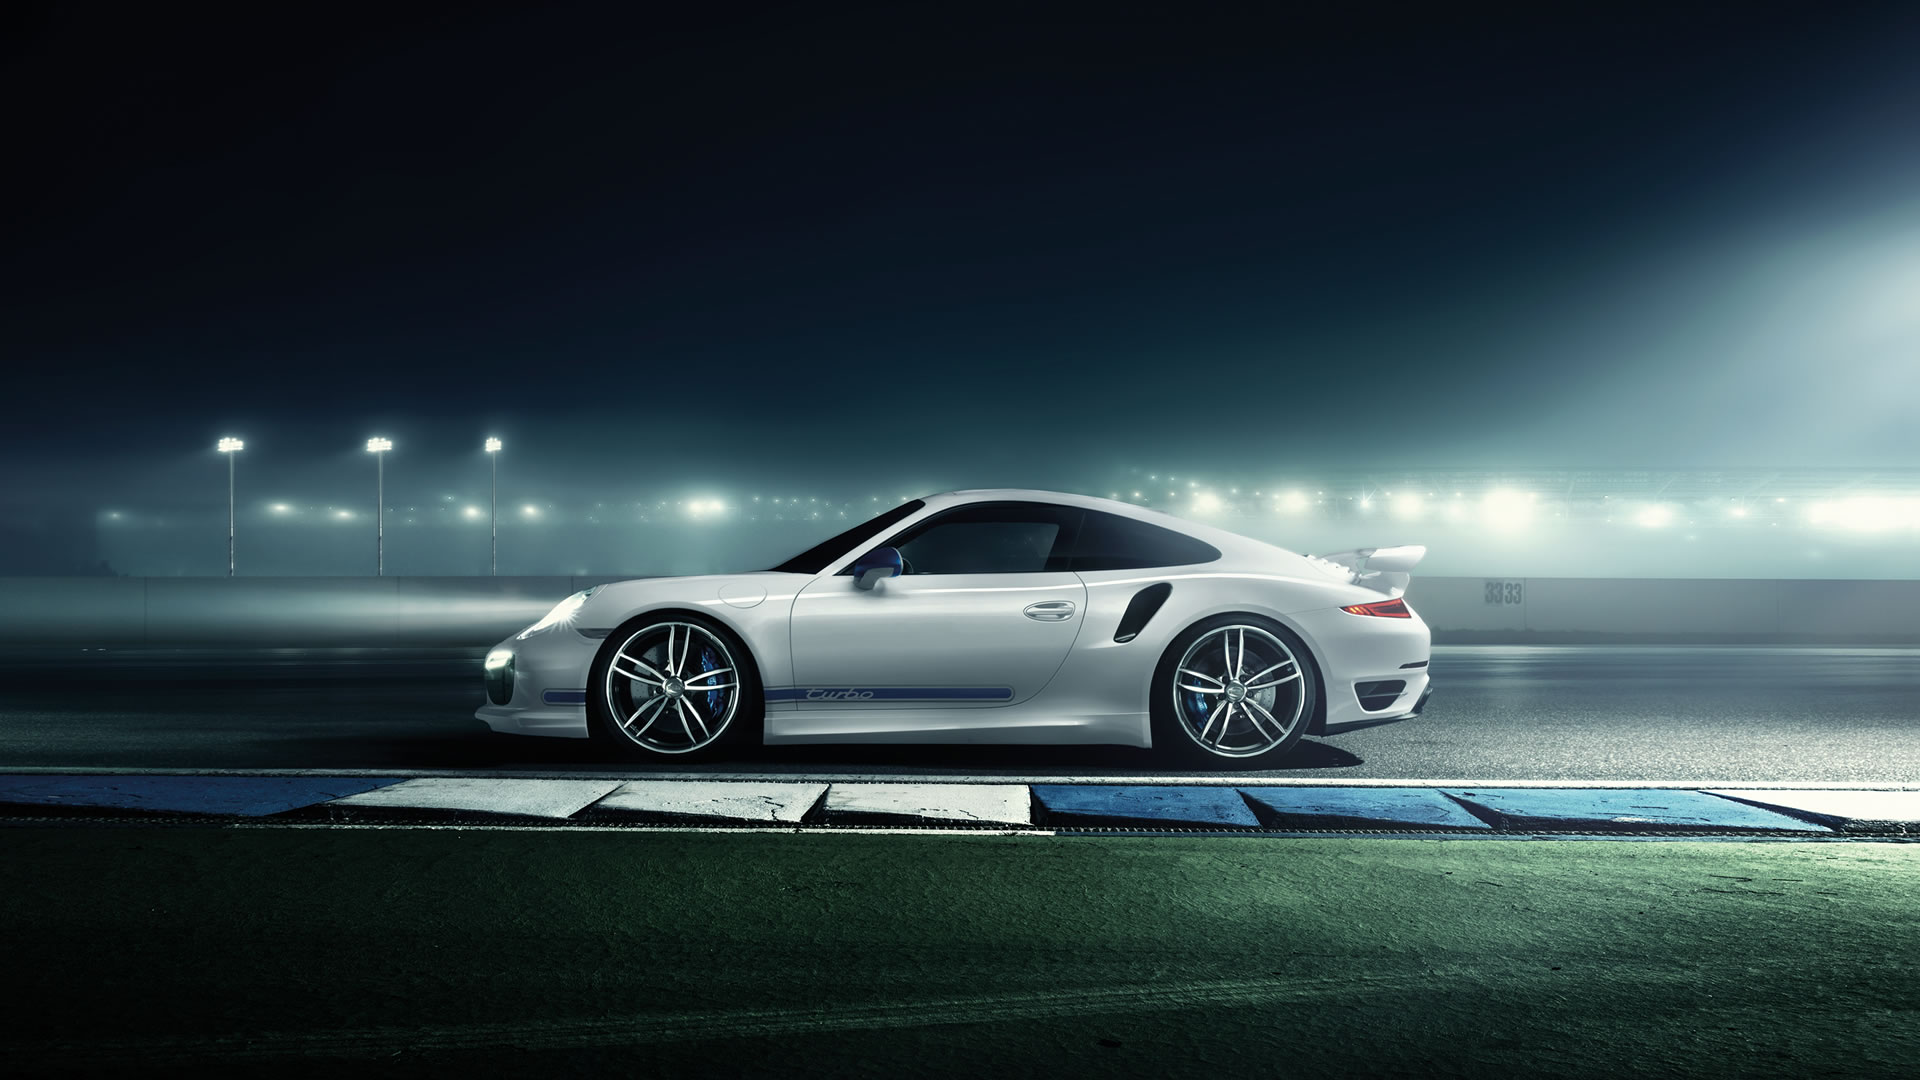 2014 porsche 911 turbo s by techart wallpaper 1920 x 1080